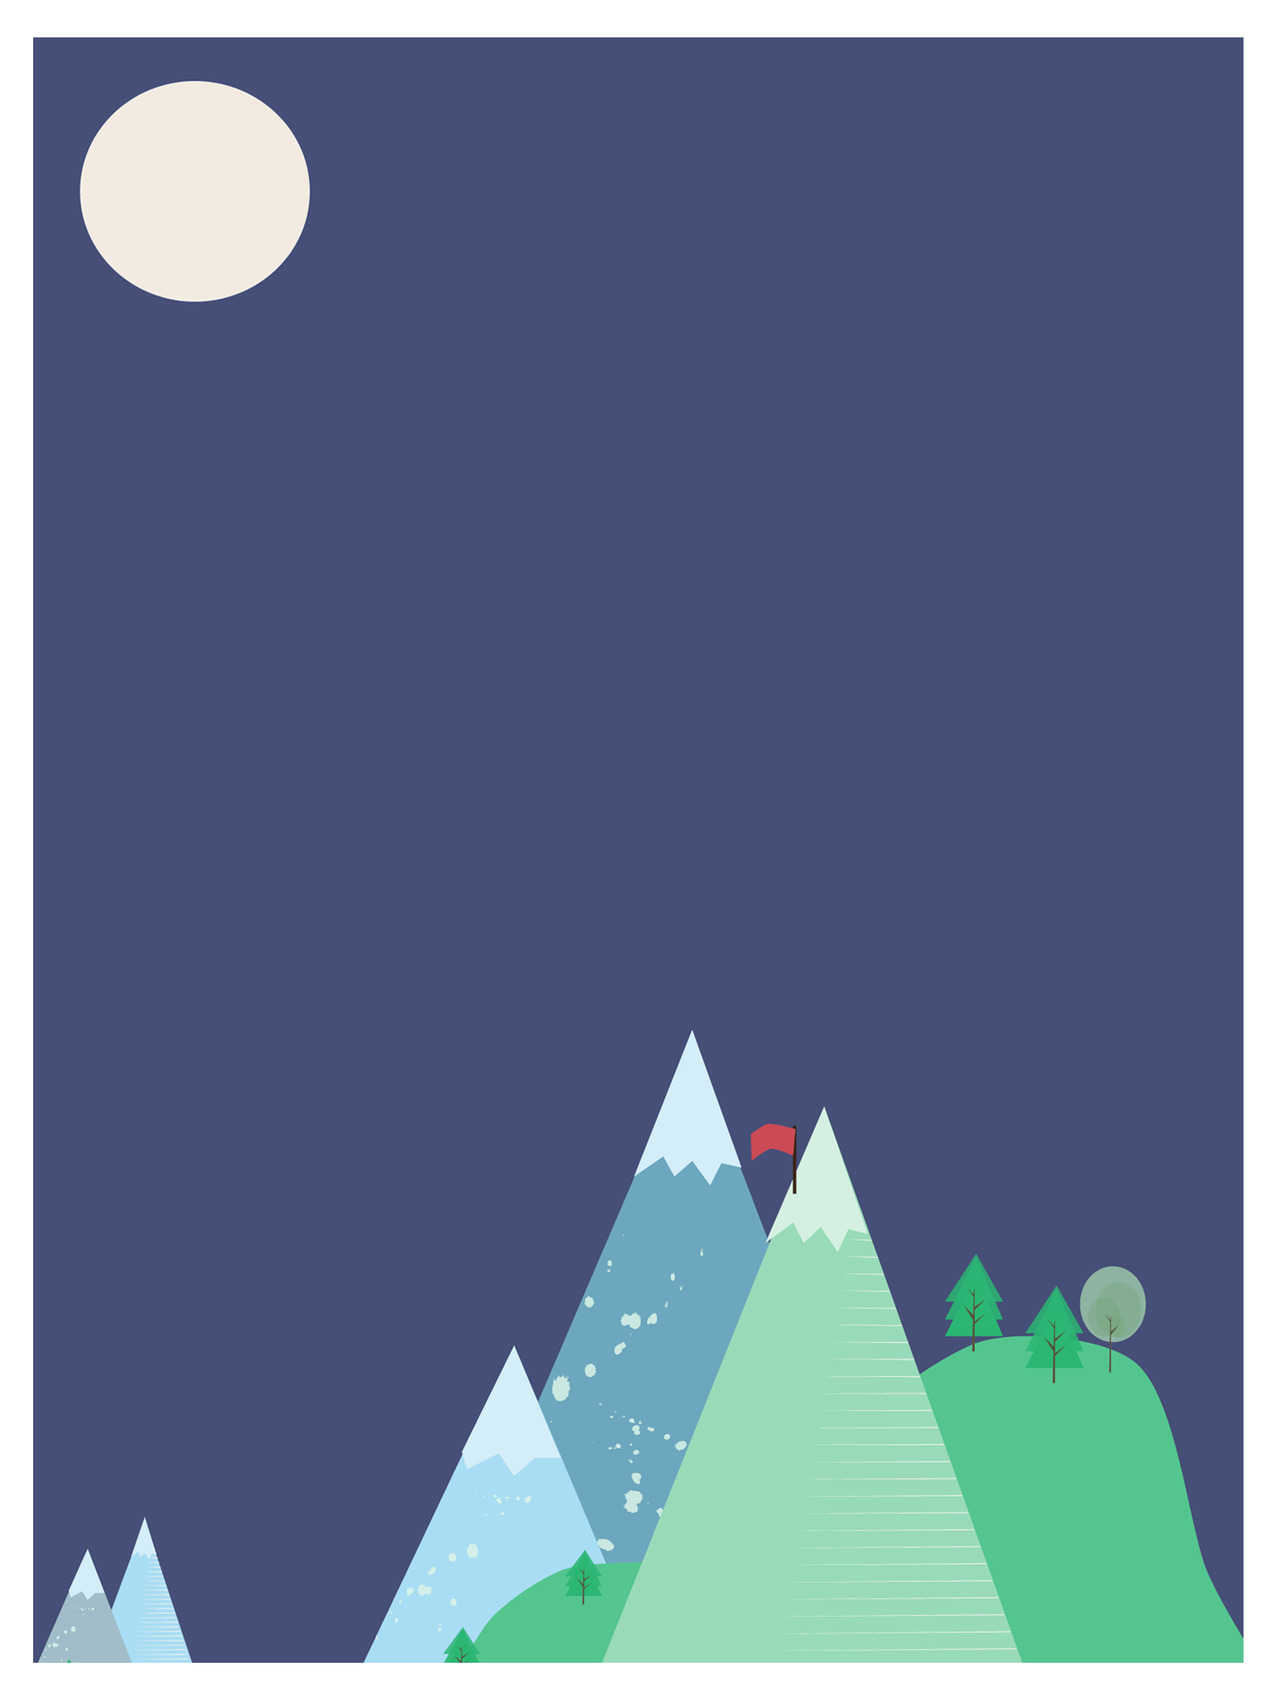 New print available on society6 :) http://society6.com/idledoodles/Mountains-BOI_Print